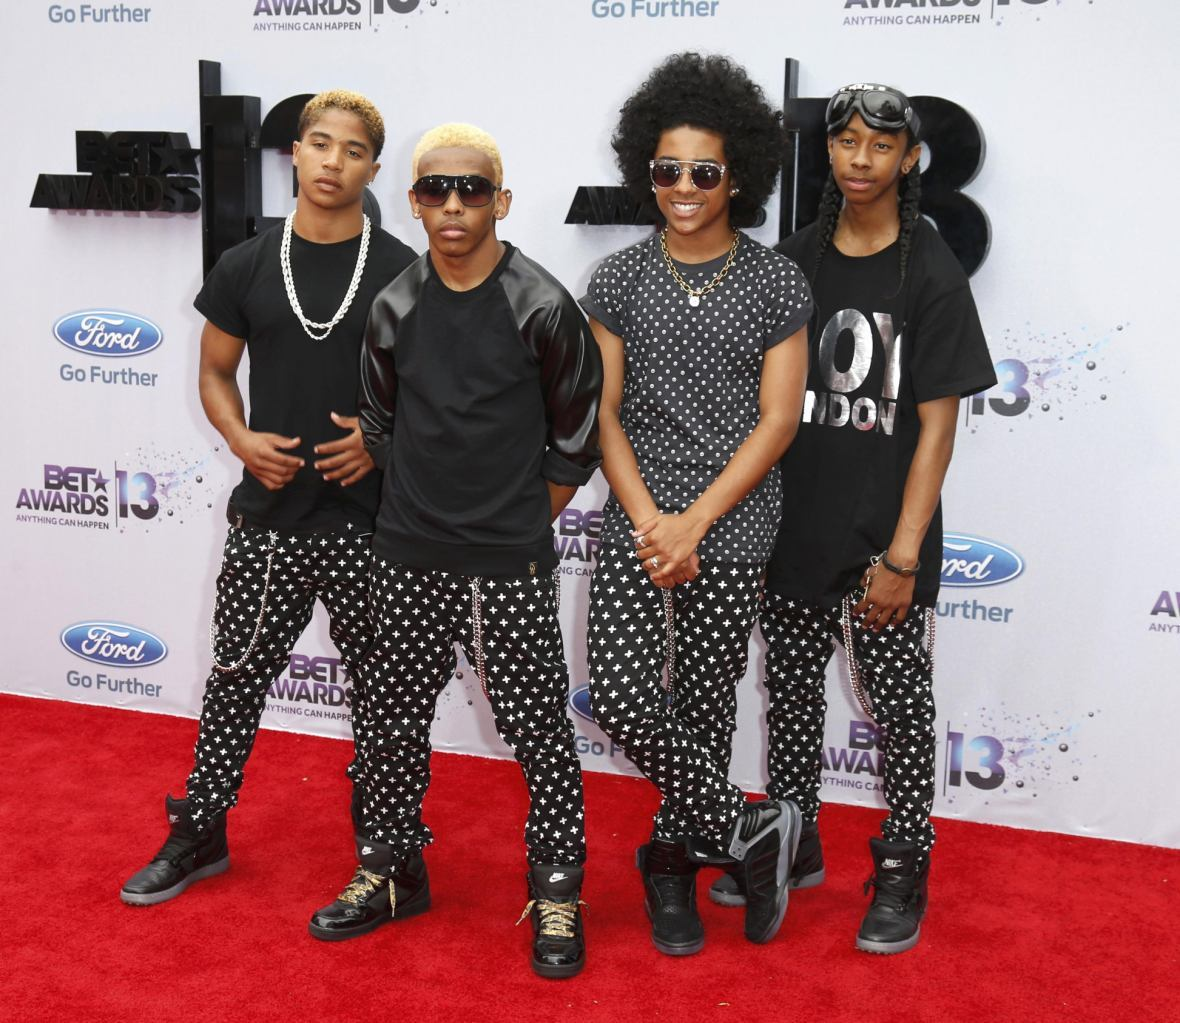 Are mindless they now behavior where Remember Me???